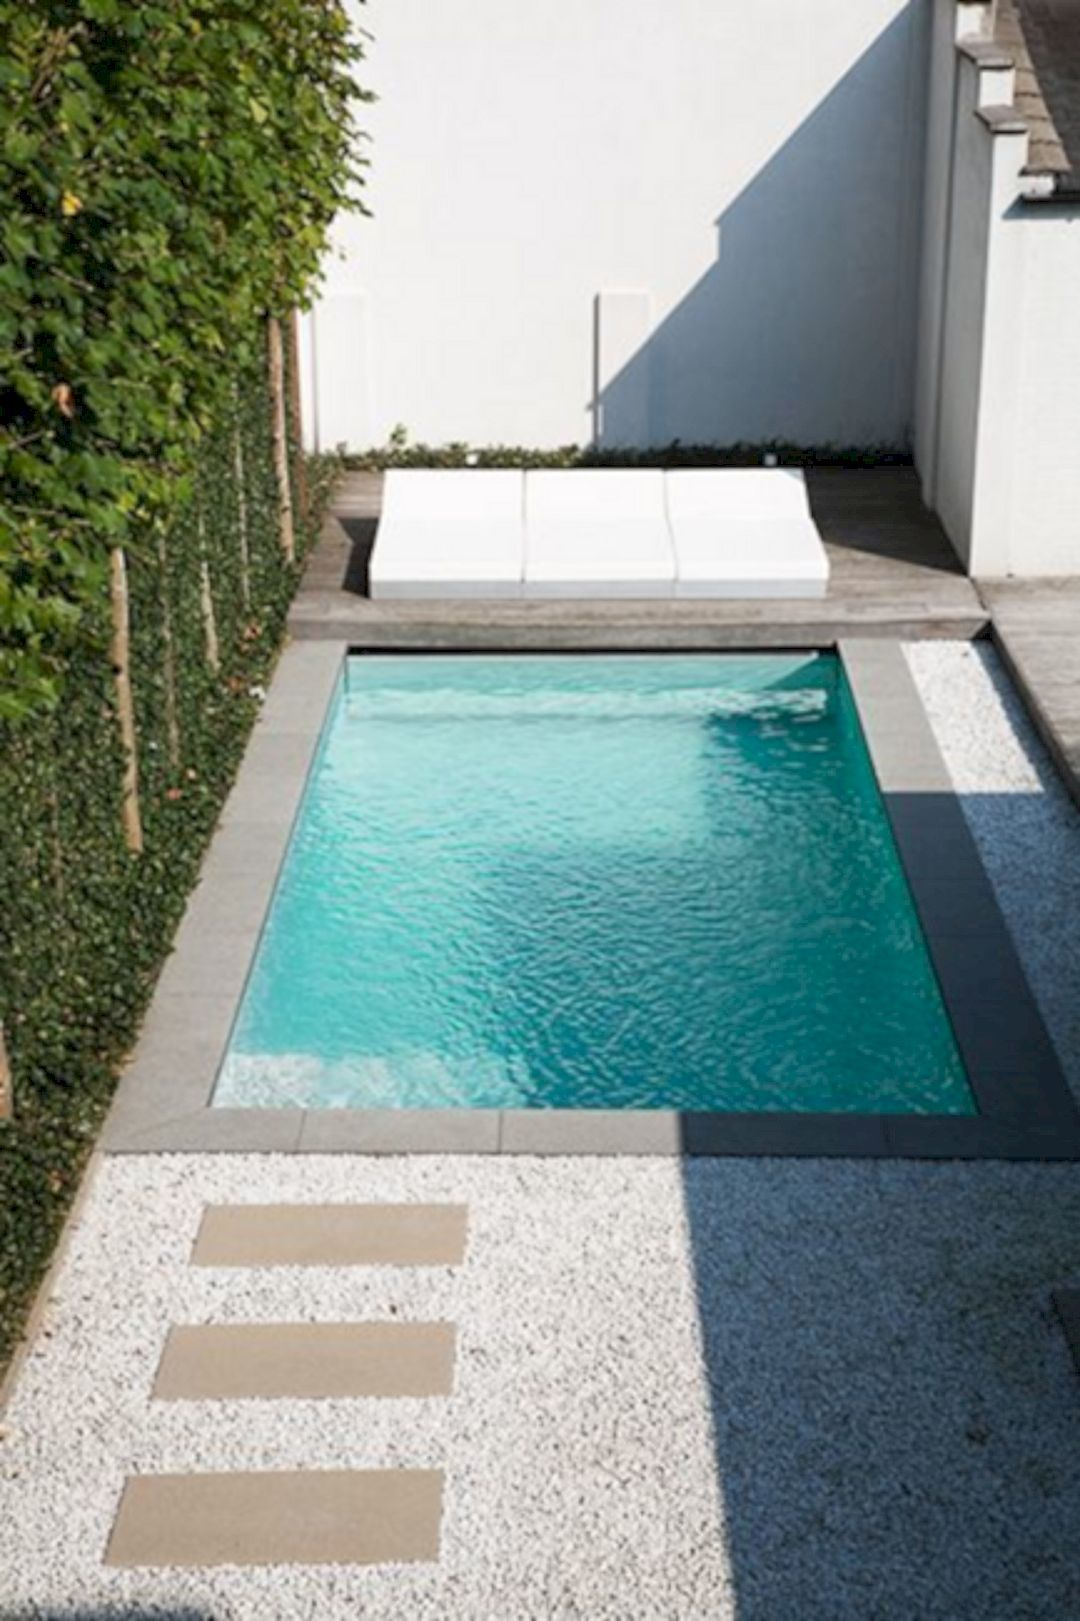 39 The Best Small Deck Ideas Of All Time Smalldeckideas Small Deck Small Deck Decorating Small Deck Small Pool Design Swimming Pool Designs Pool Landscaping